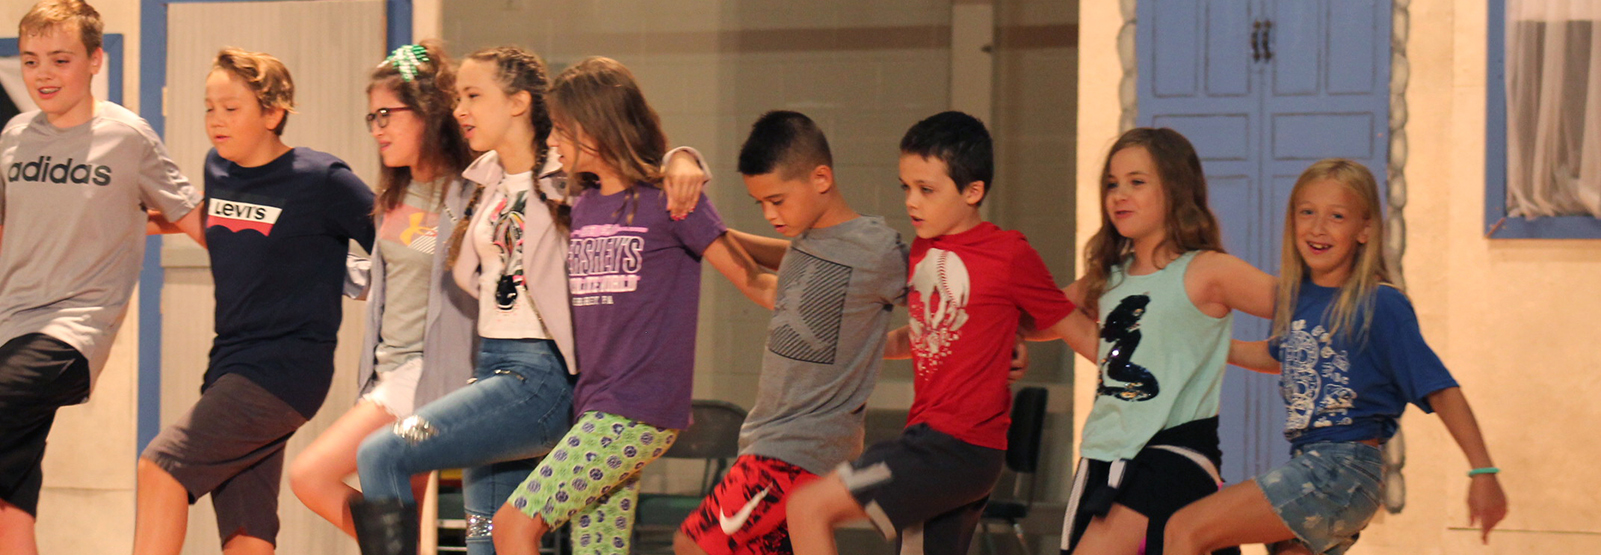 student performers rehearse for Mary Poppins Jr.